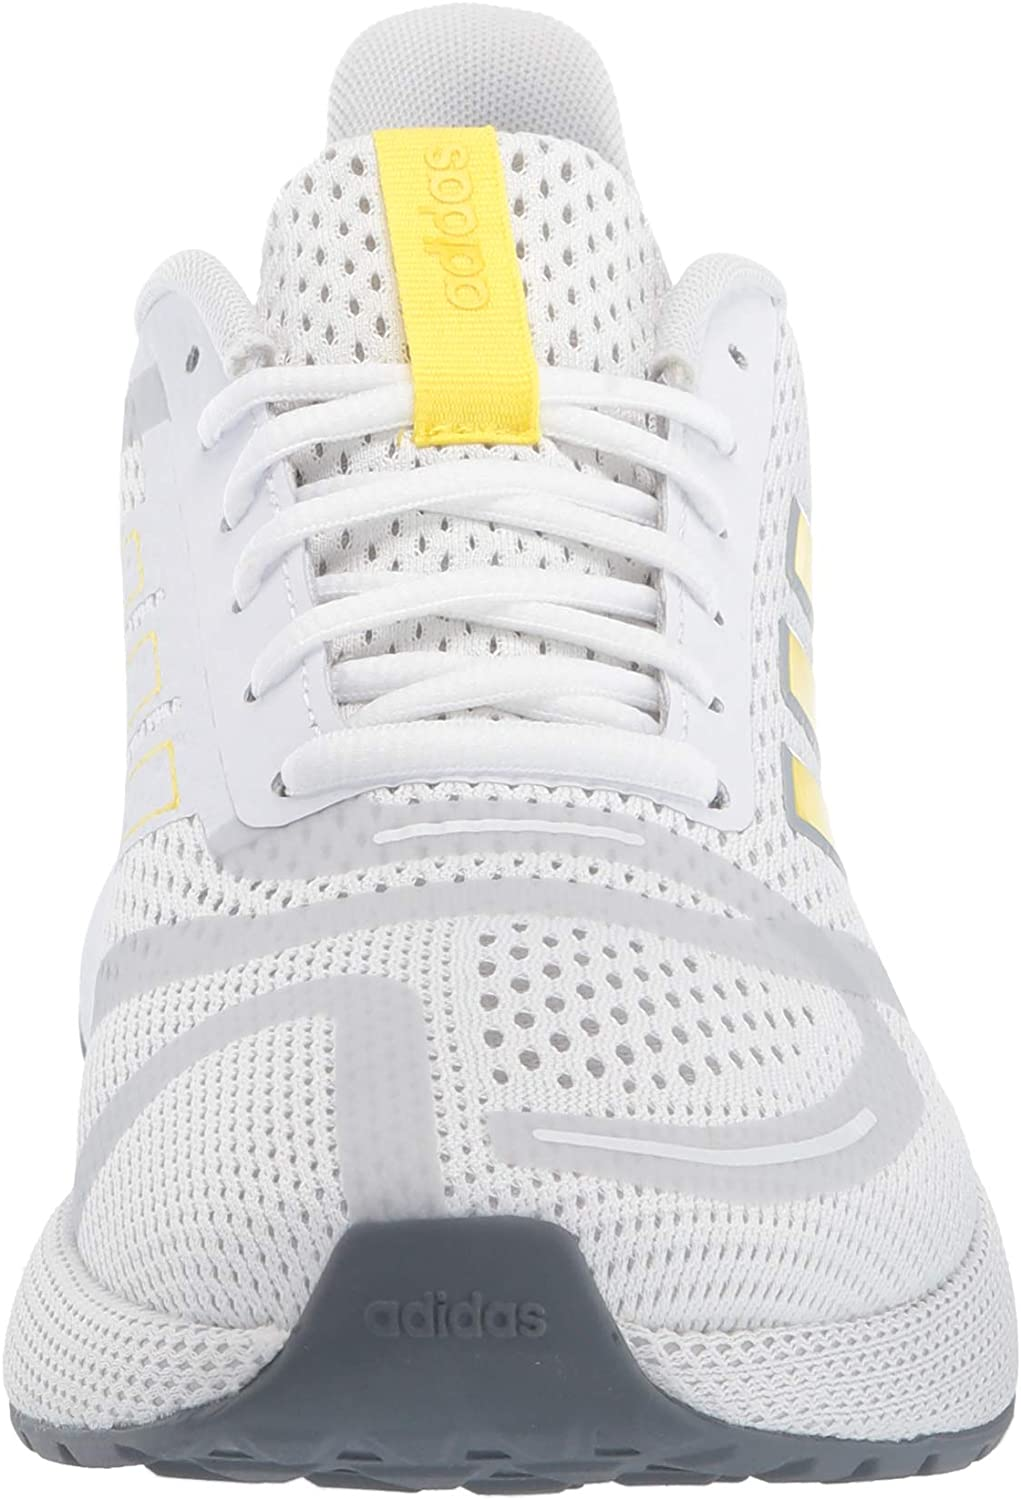 adidas Men's Nova Running Shoe Ftwr White/Shock Yellow/Glory Green